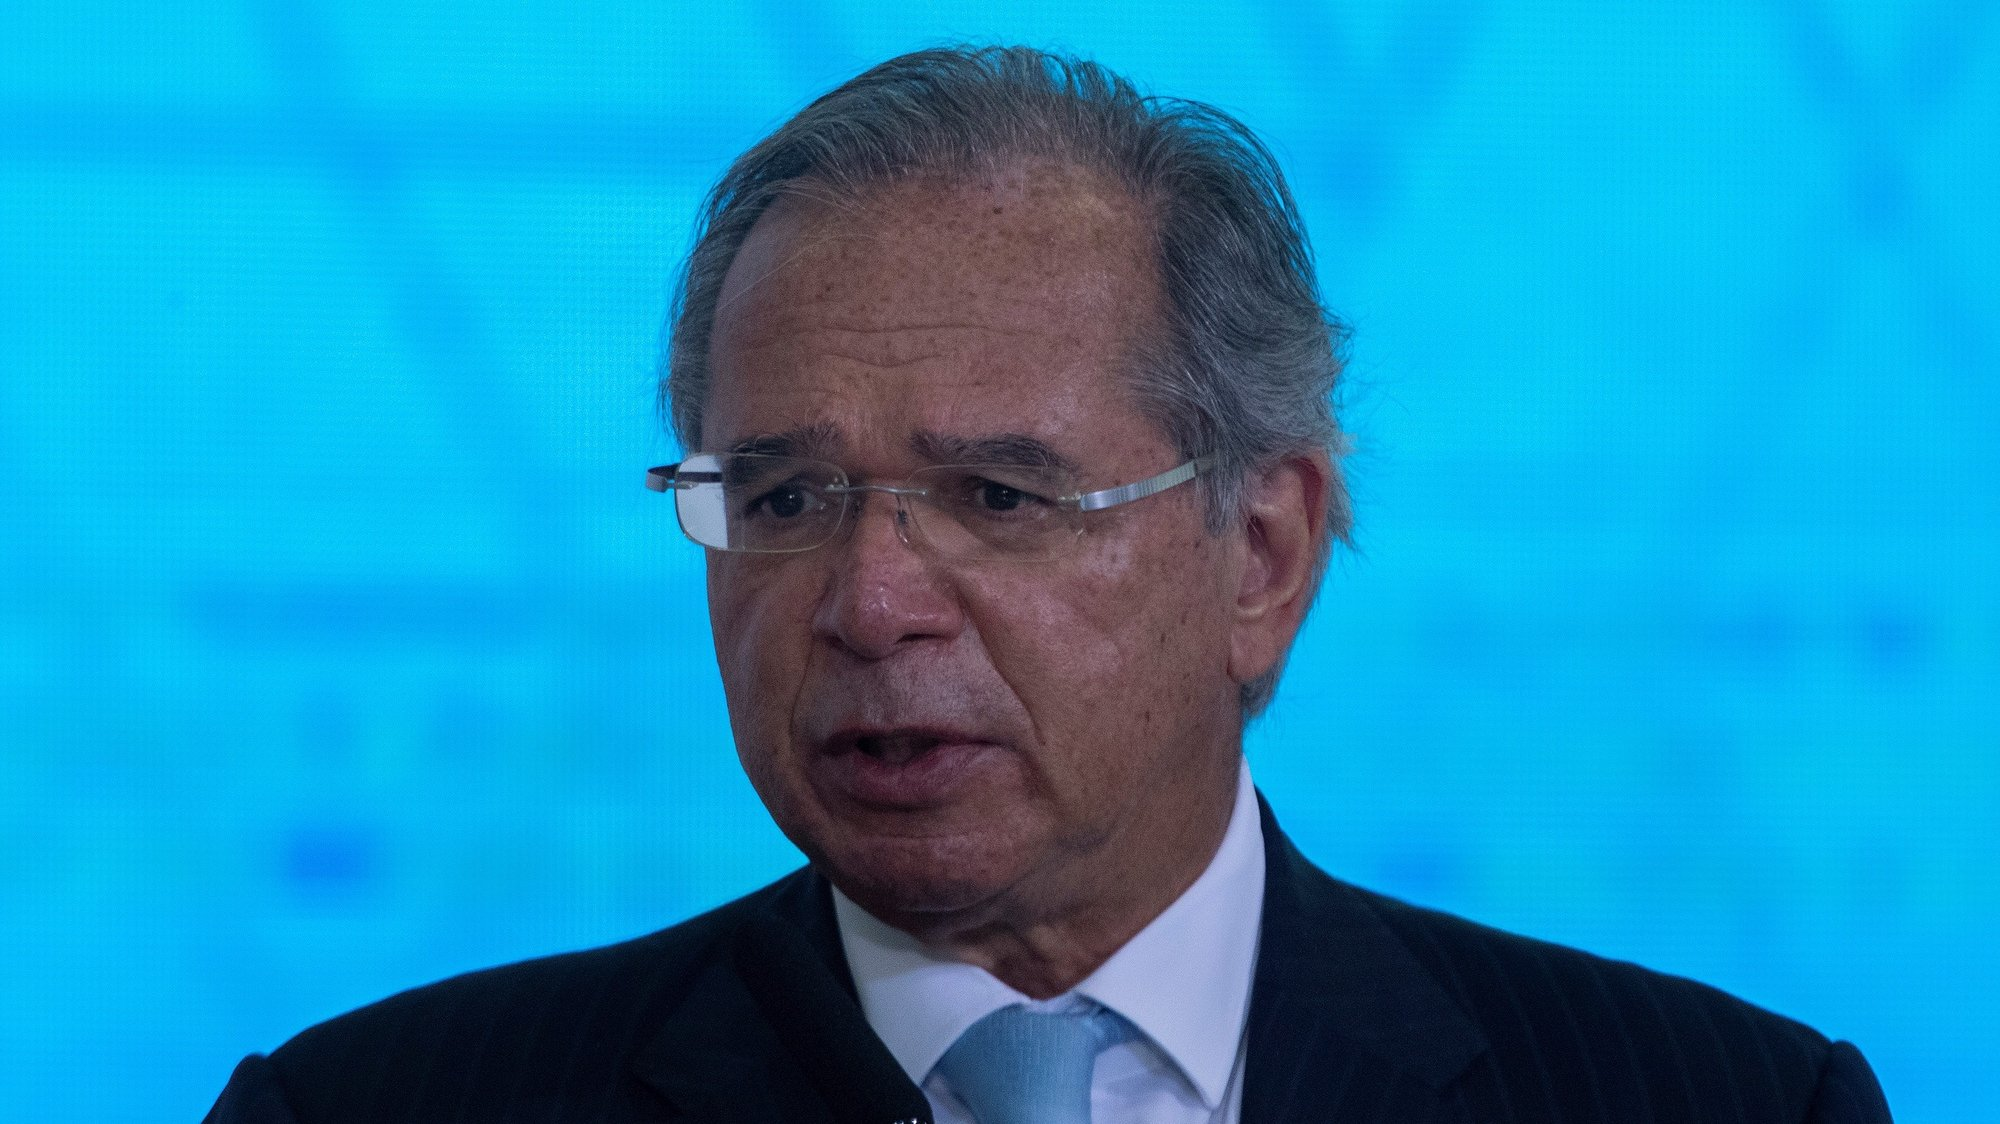 epa09343161 The Brazilian Minister of Economy, Paulo Guedes, speaks during the sanction ceremony of the Eletrobras Capitalization Law, at the Planalto Palace in Brasilia, Brazil, 13 July 2021. Bolsonaro sanctioned with some vetoes the Provisional Measure that regulates the privatization process of the state giant Eletrobras, the largest electricity company in Latin America, according to the Official Gazette of the Union published on 13 July.  EPA/Joedson Alves